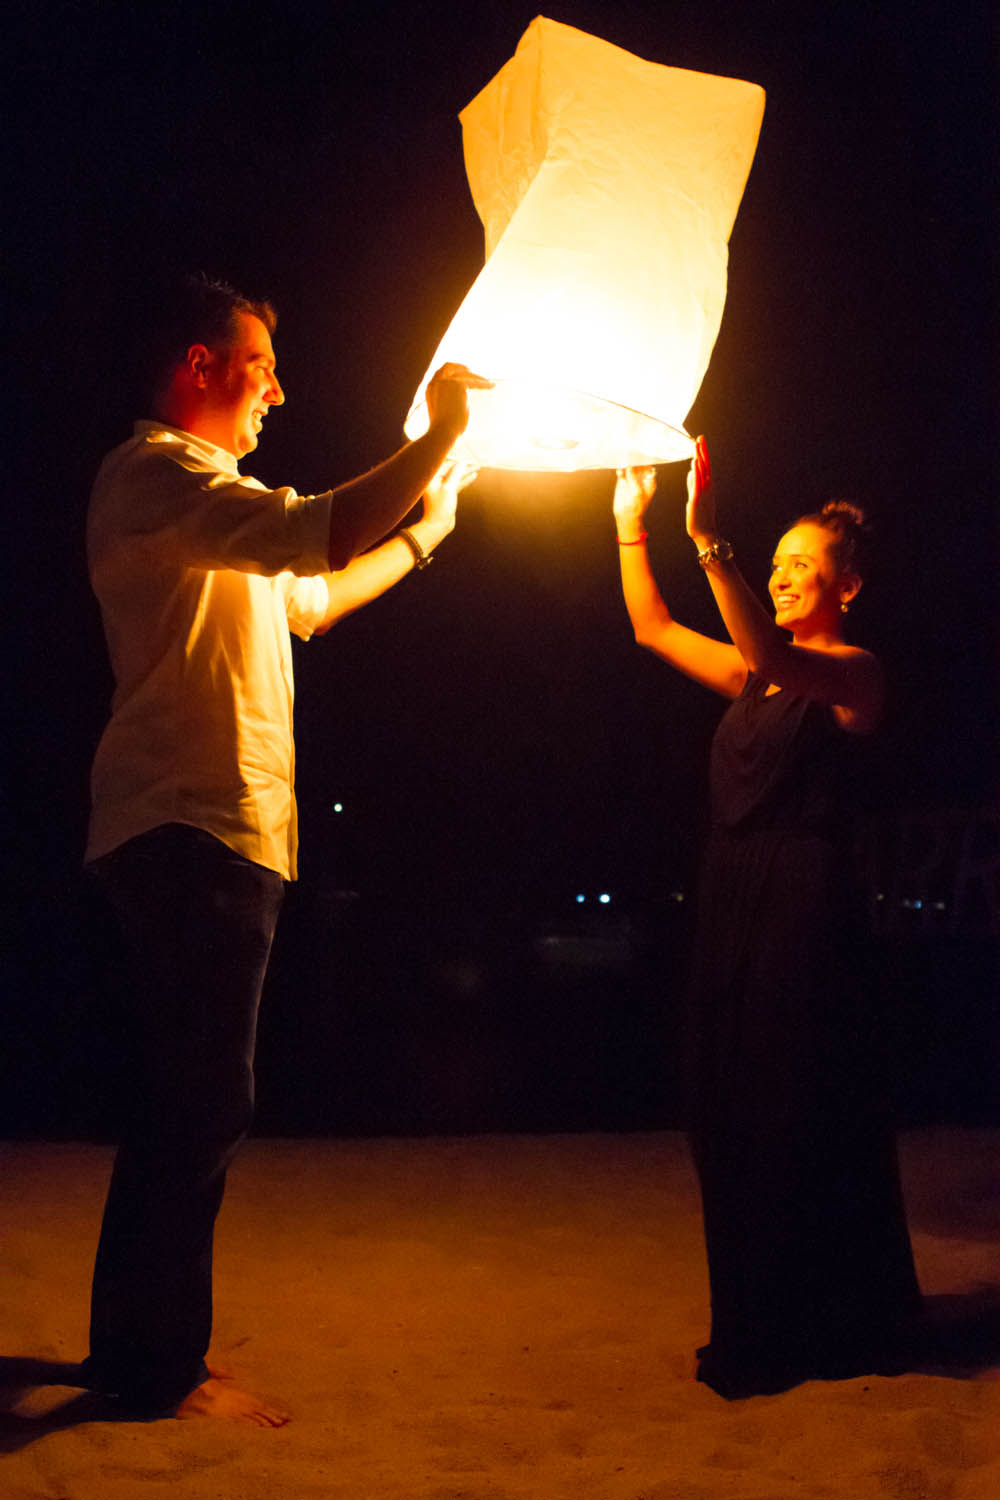 Image 15 of Brina and Rafael | Engaged in Thailand